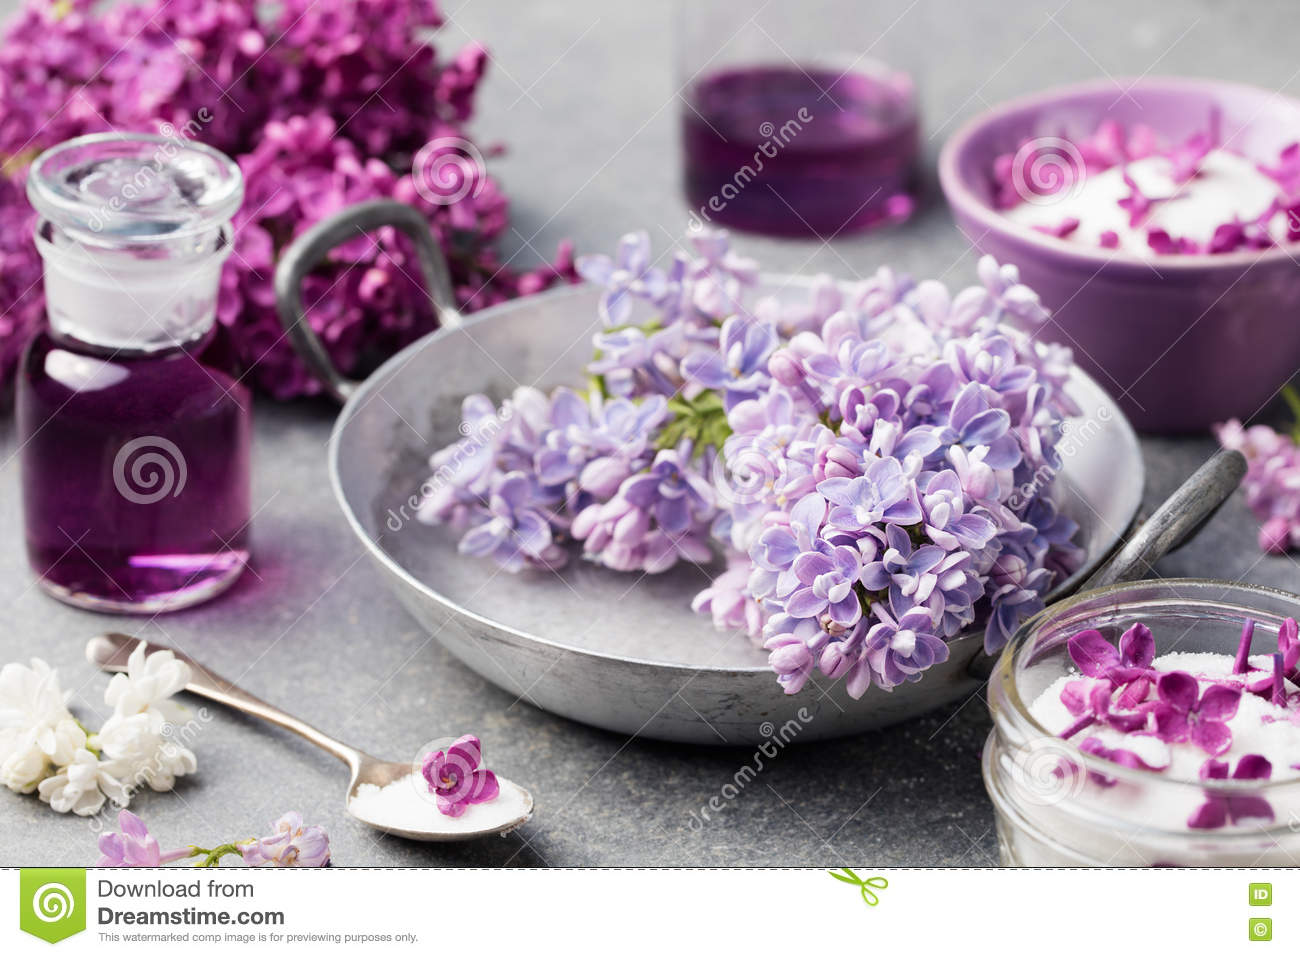 Lilac flowers sugar and syrup, essential oil with flower blossoms in glass jar Grey stone background